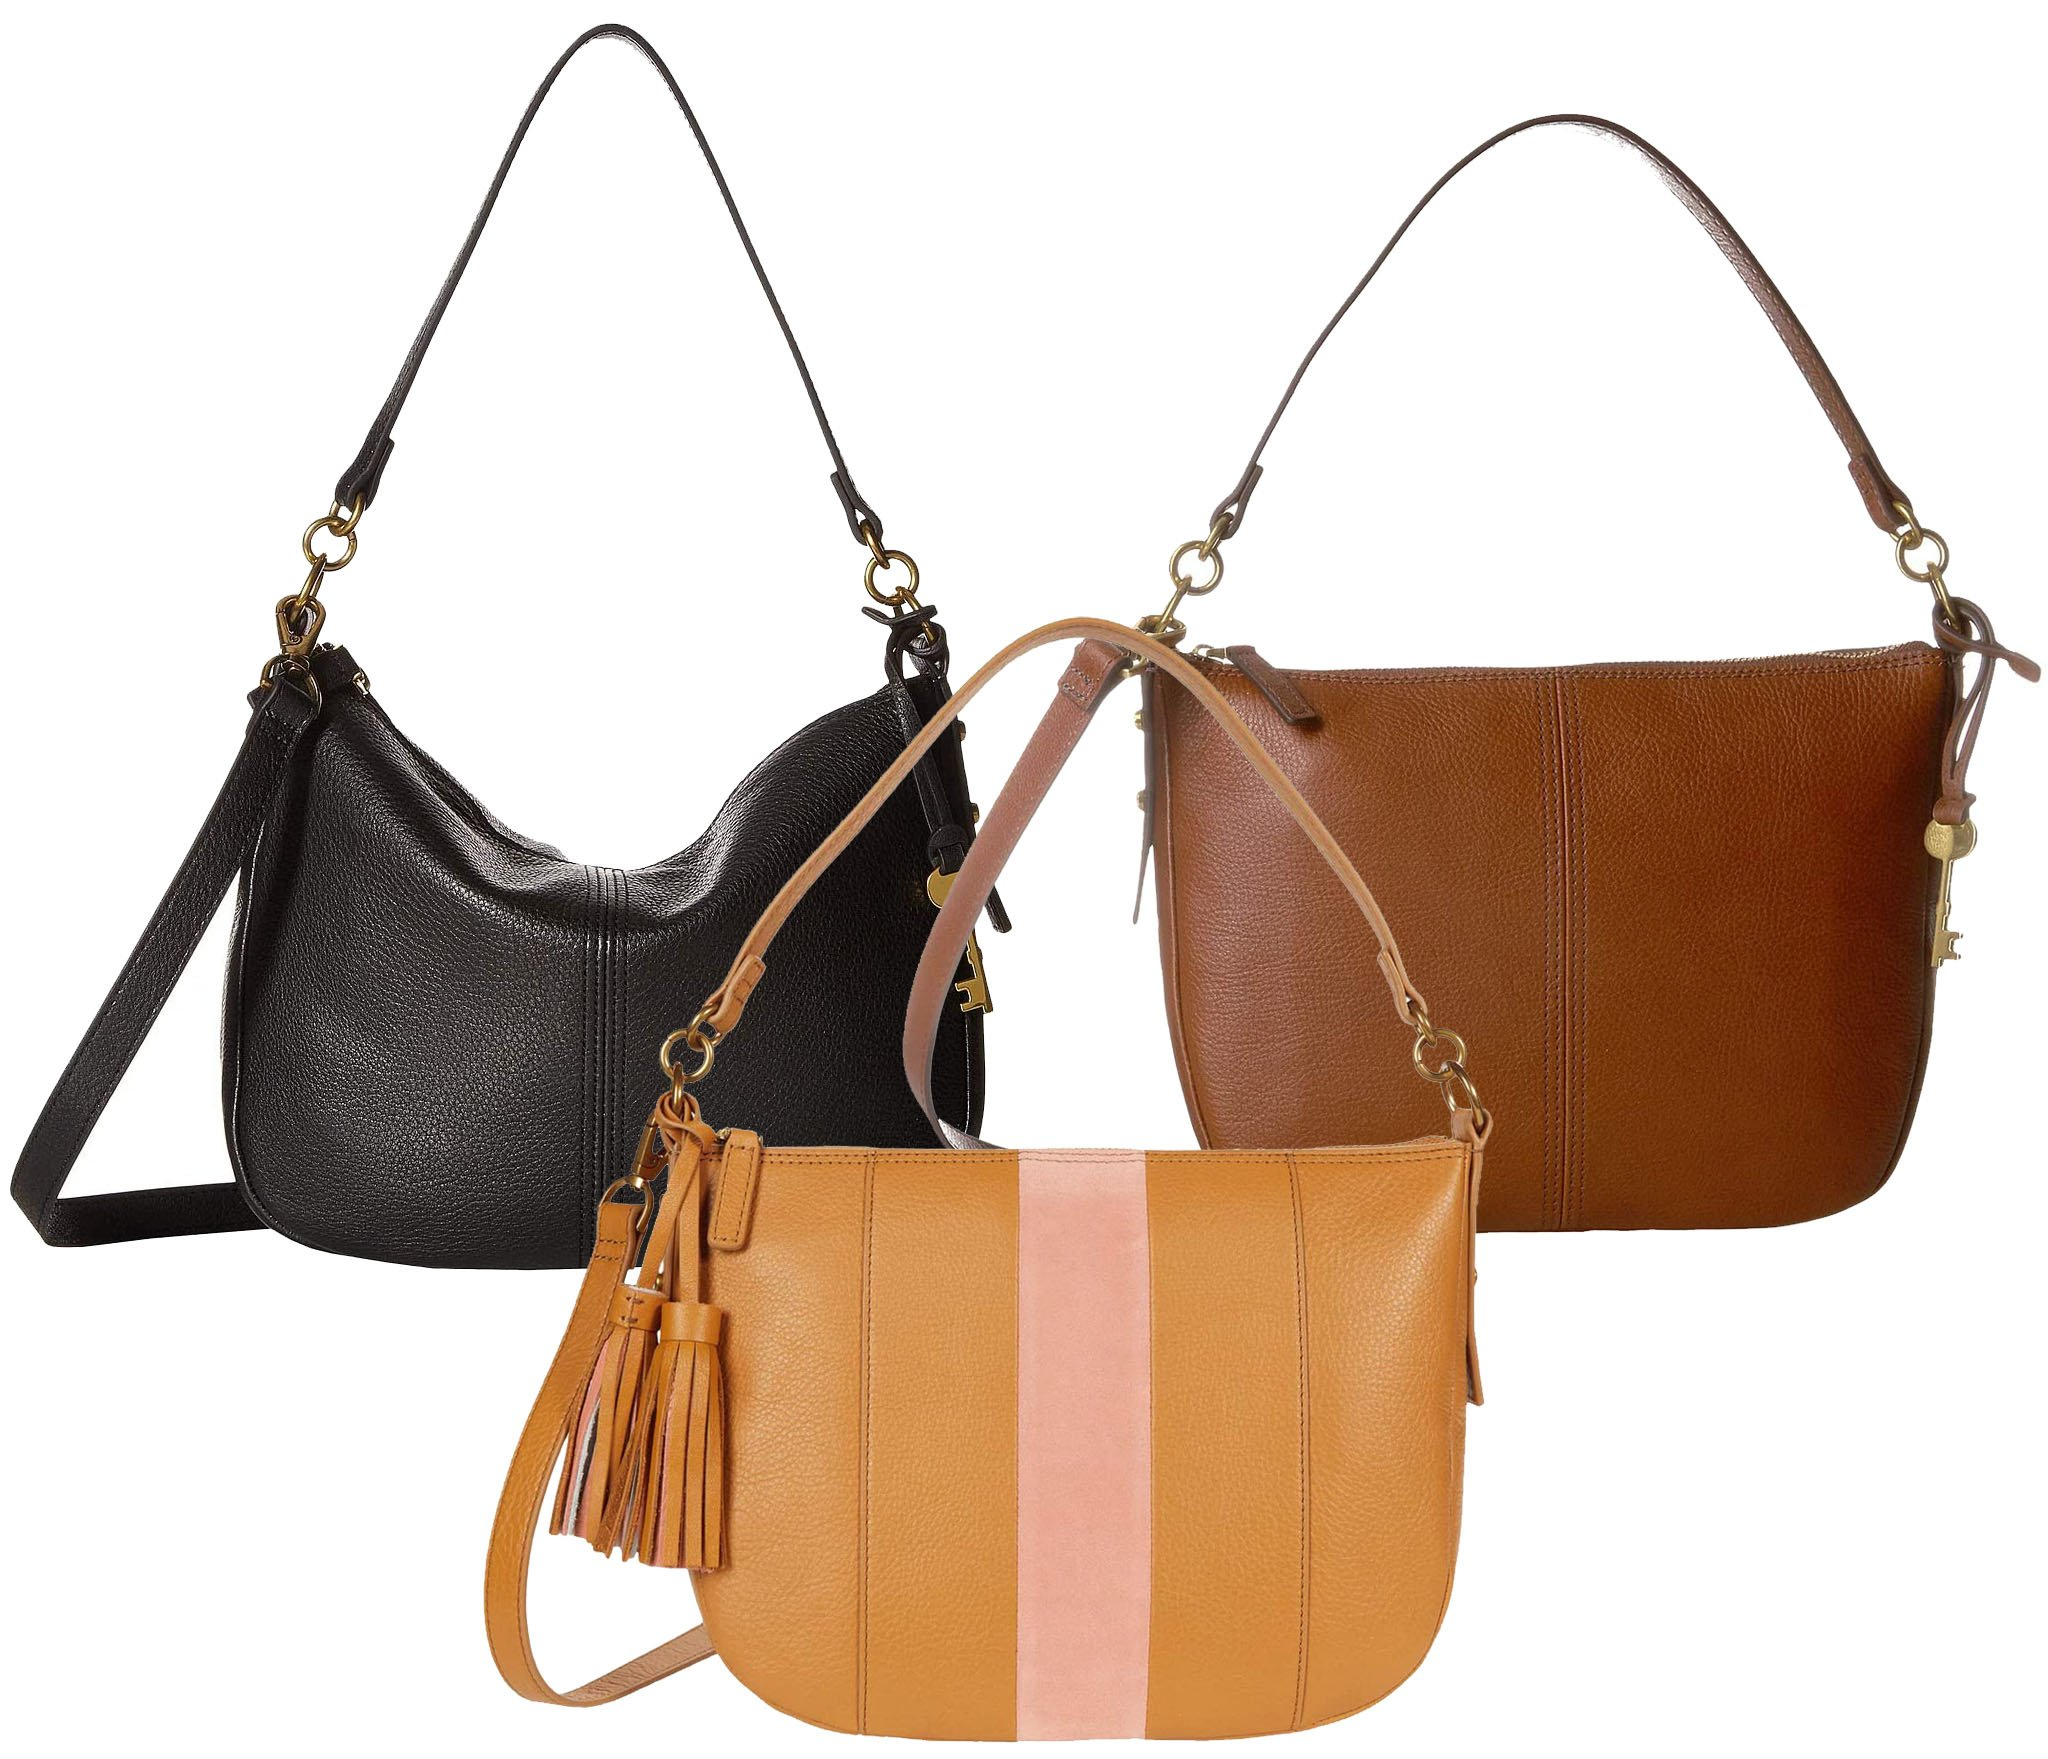 Carry your essentials and more in this timeless yet chic Jolie crossbody bag